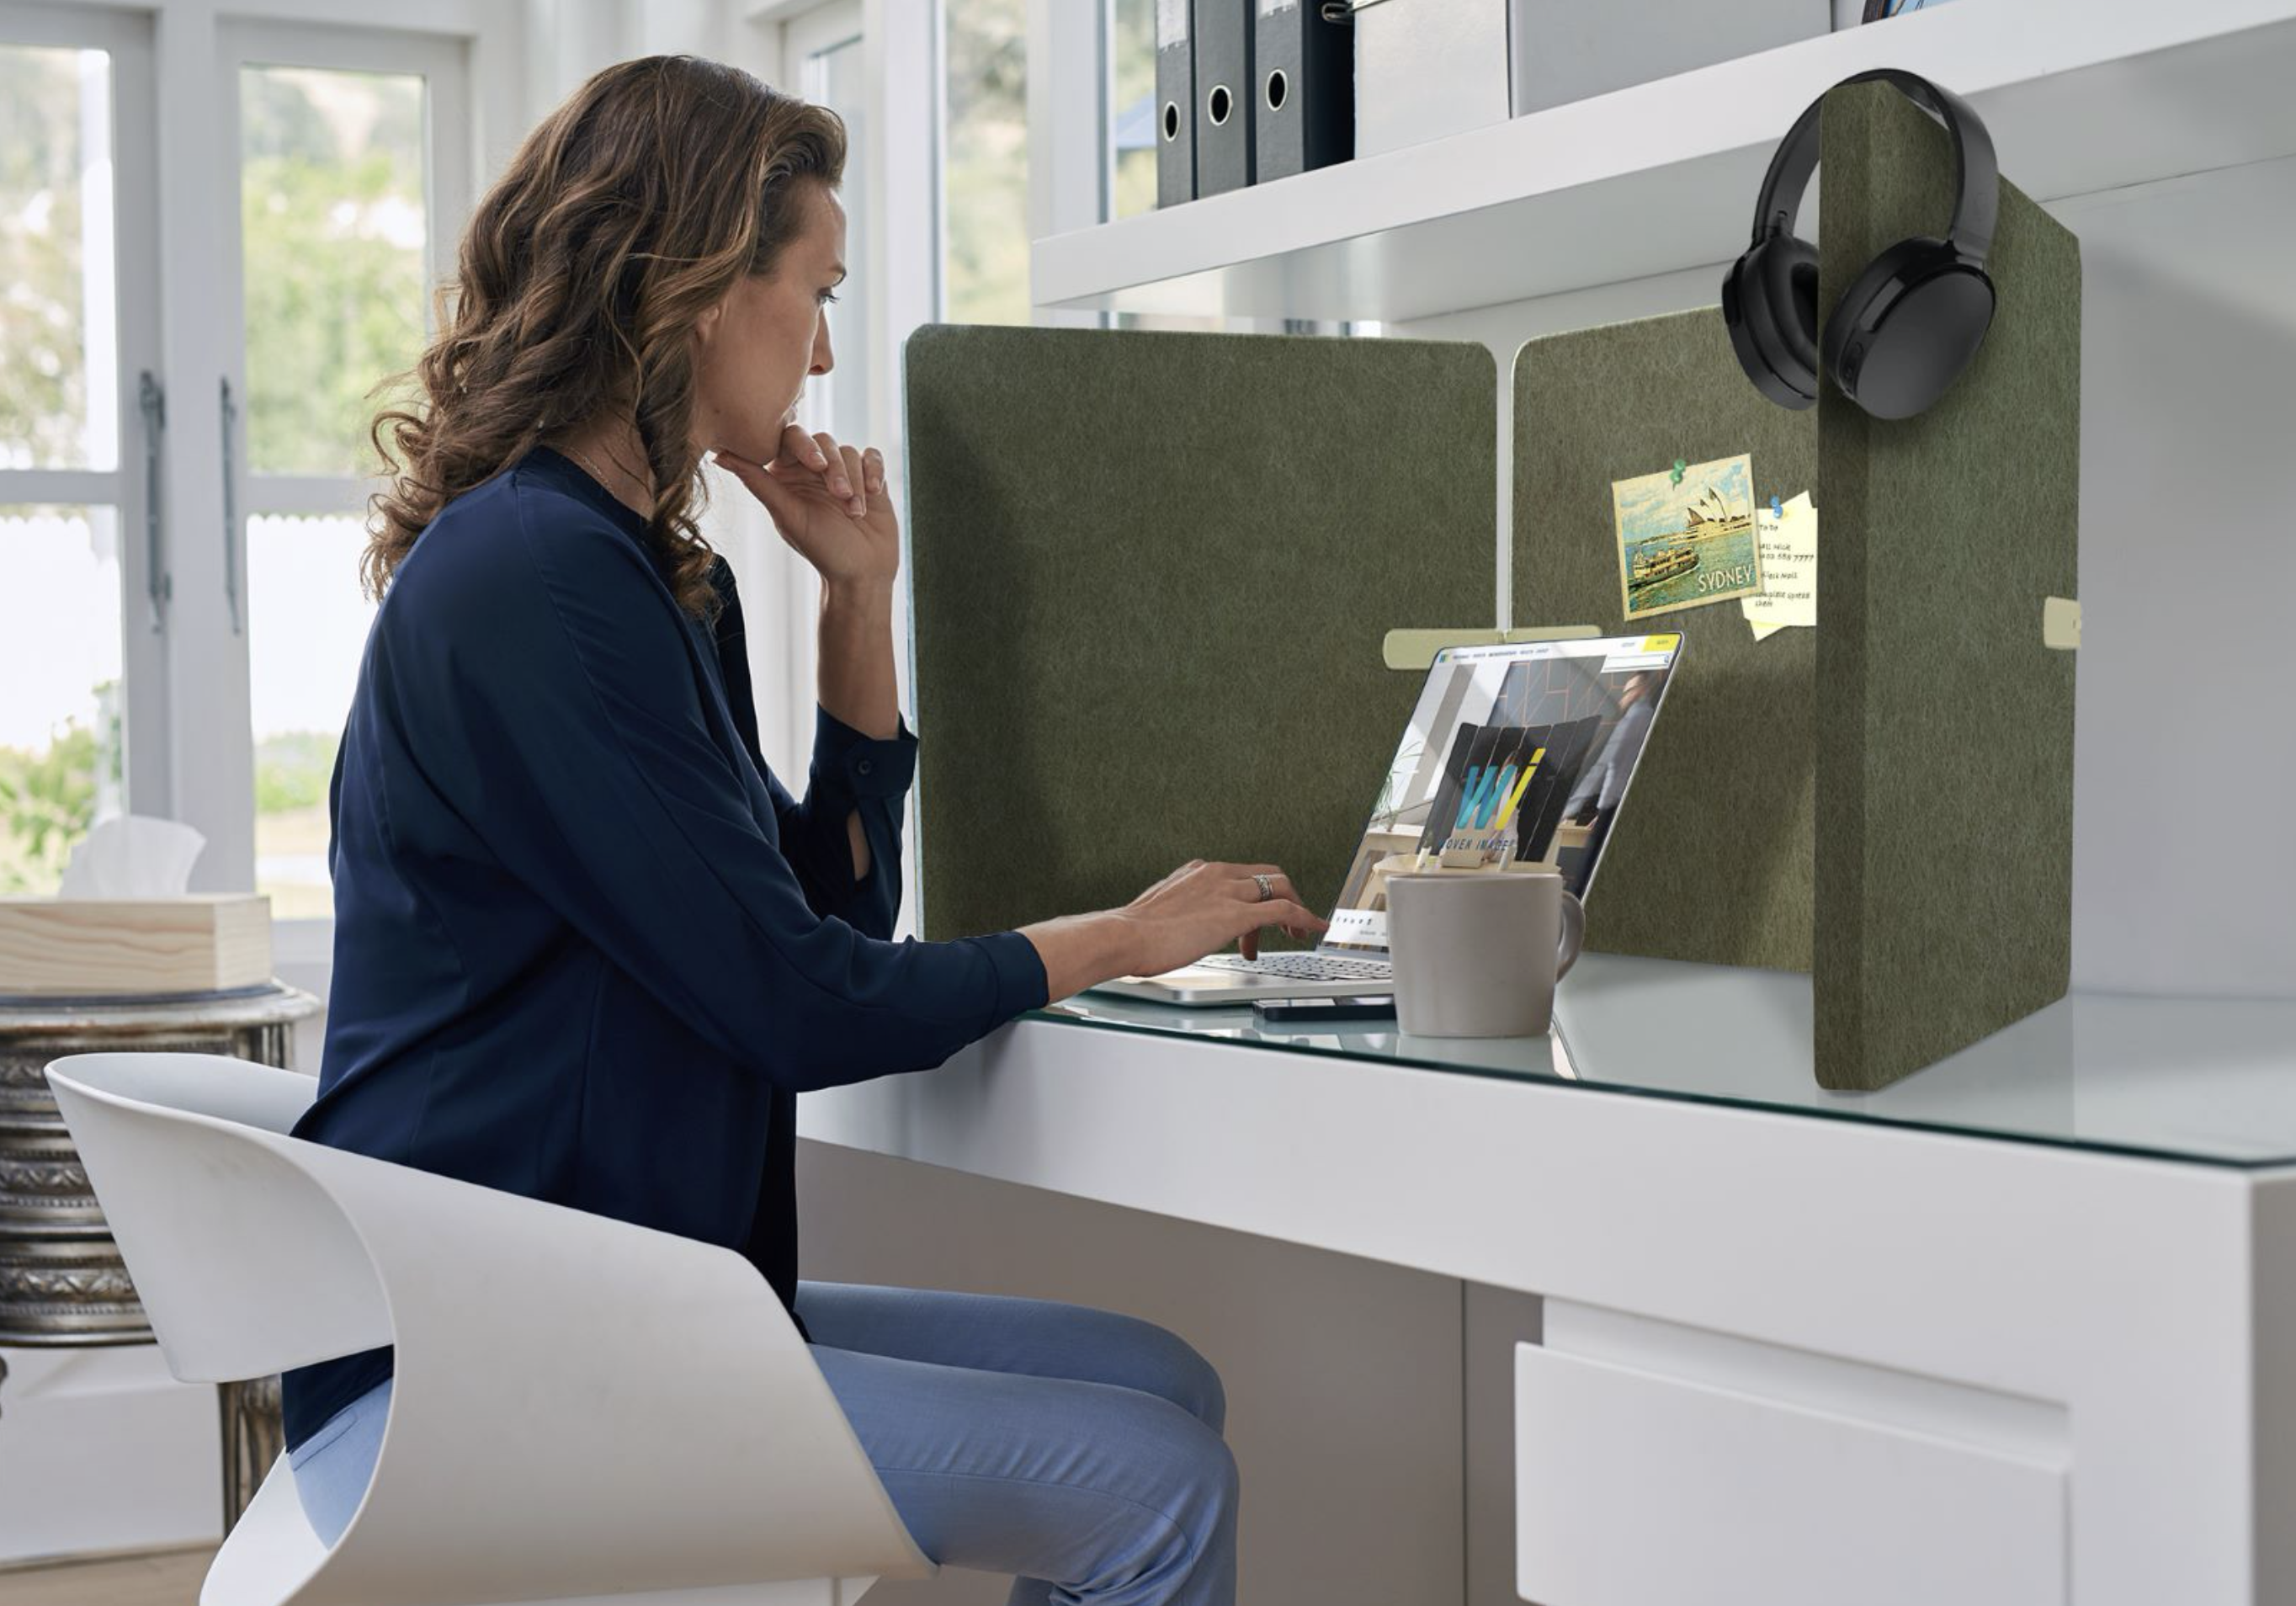 EchoPanel from Woven Image is sound absorbing